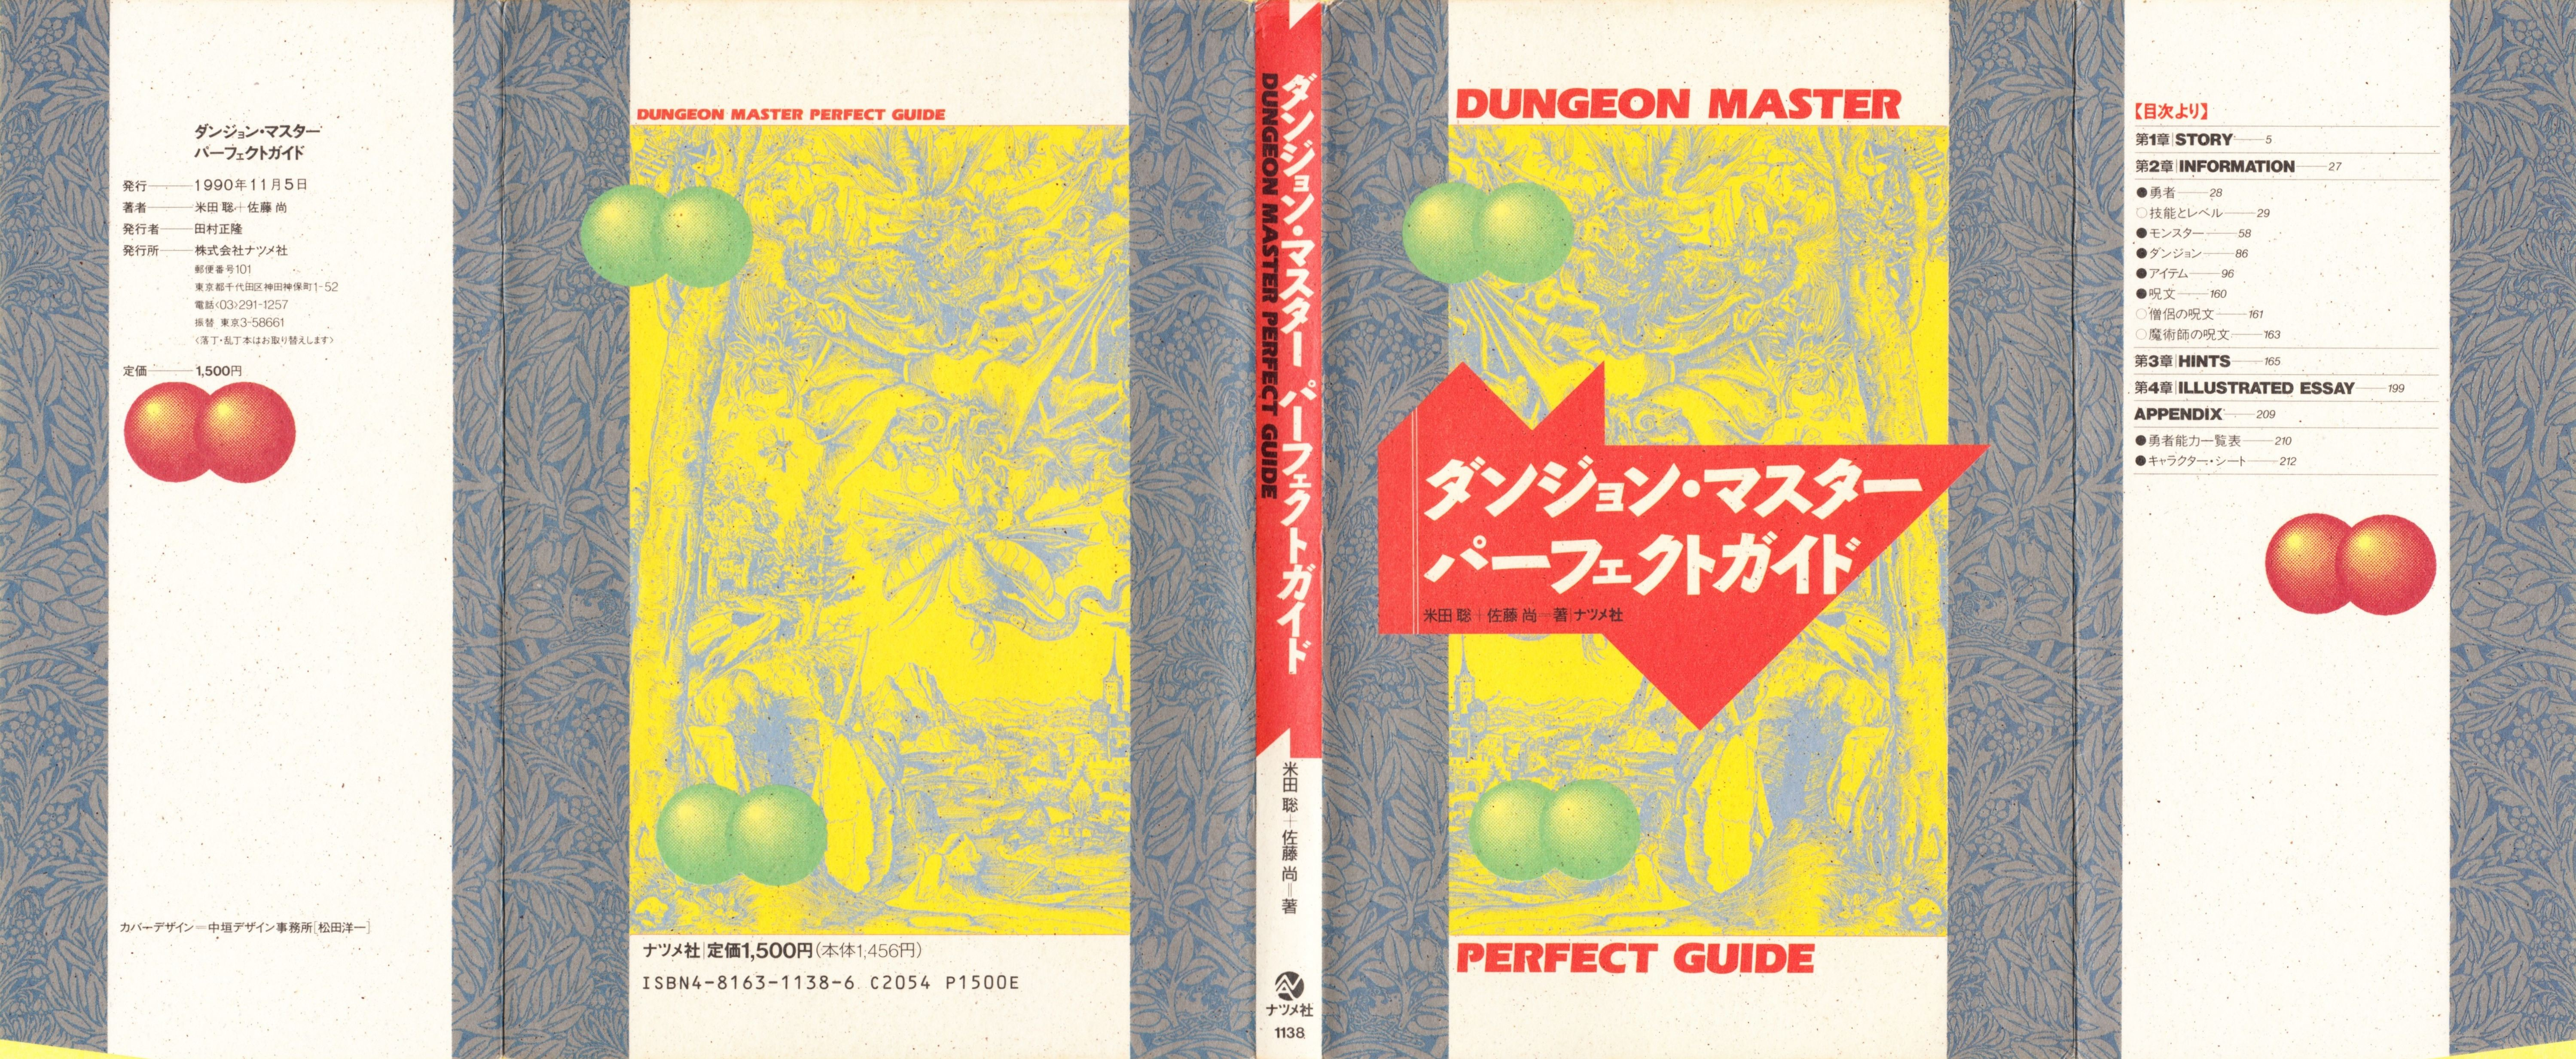 Hint Book - Dungeon Master Perfect Guide - JP - Dust Jacket - Front - Scan